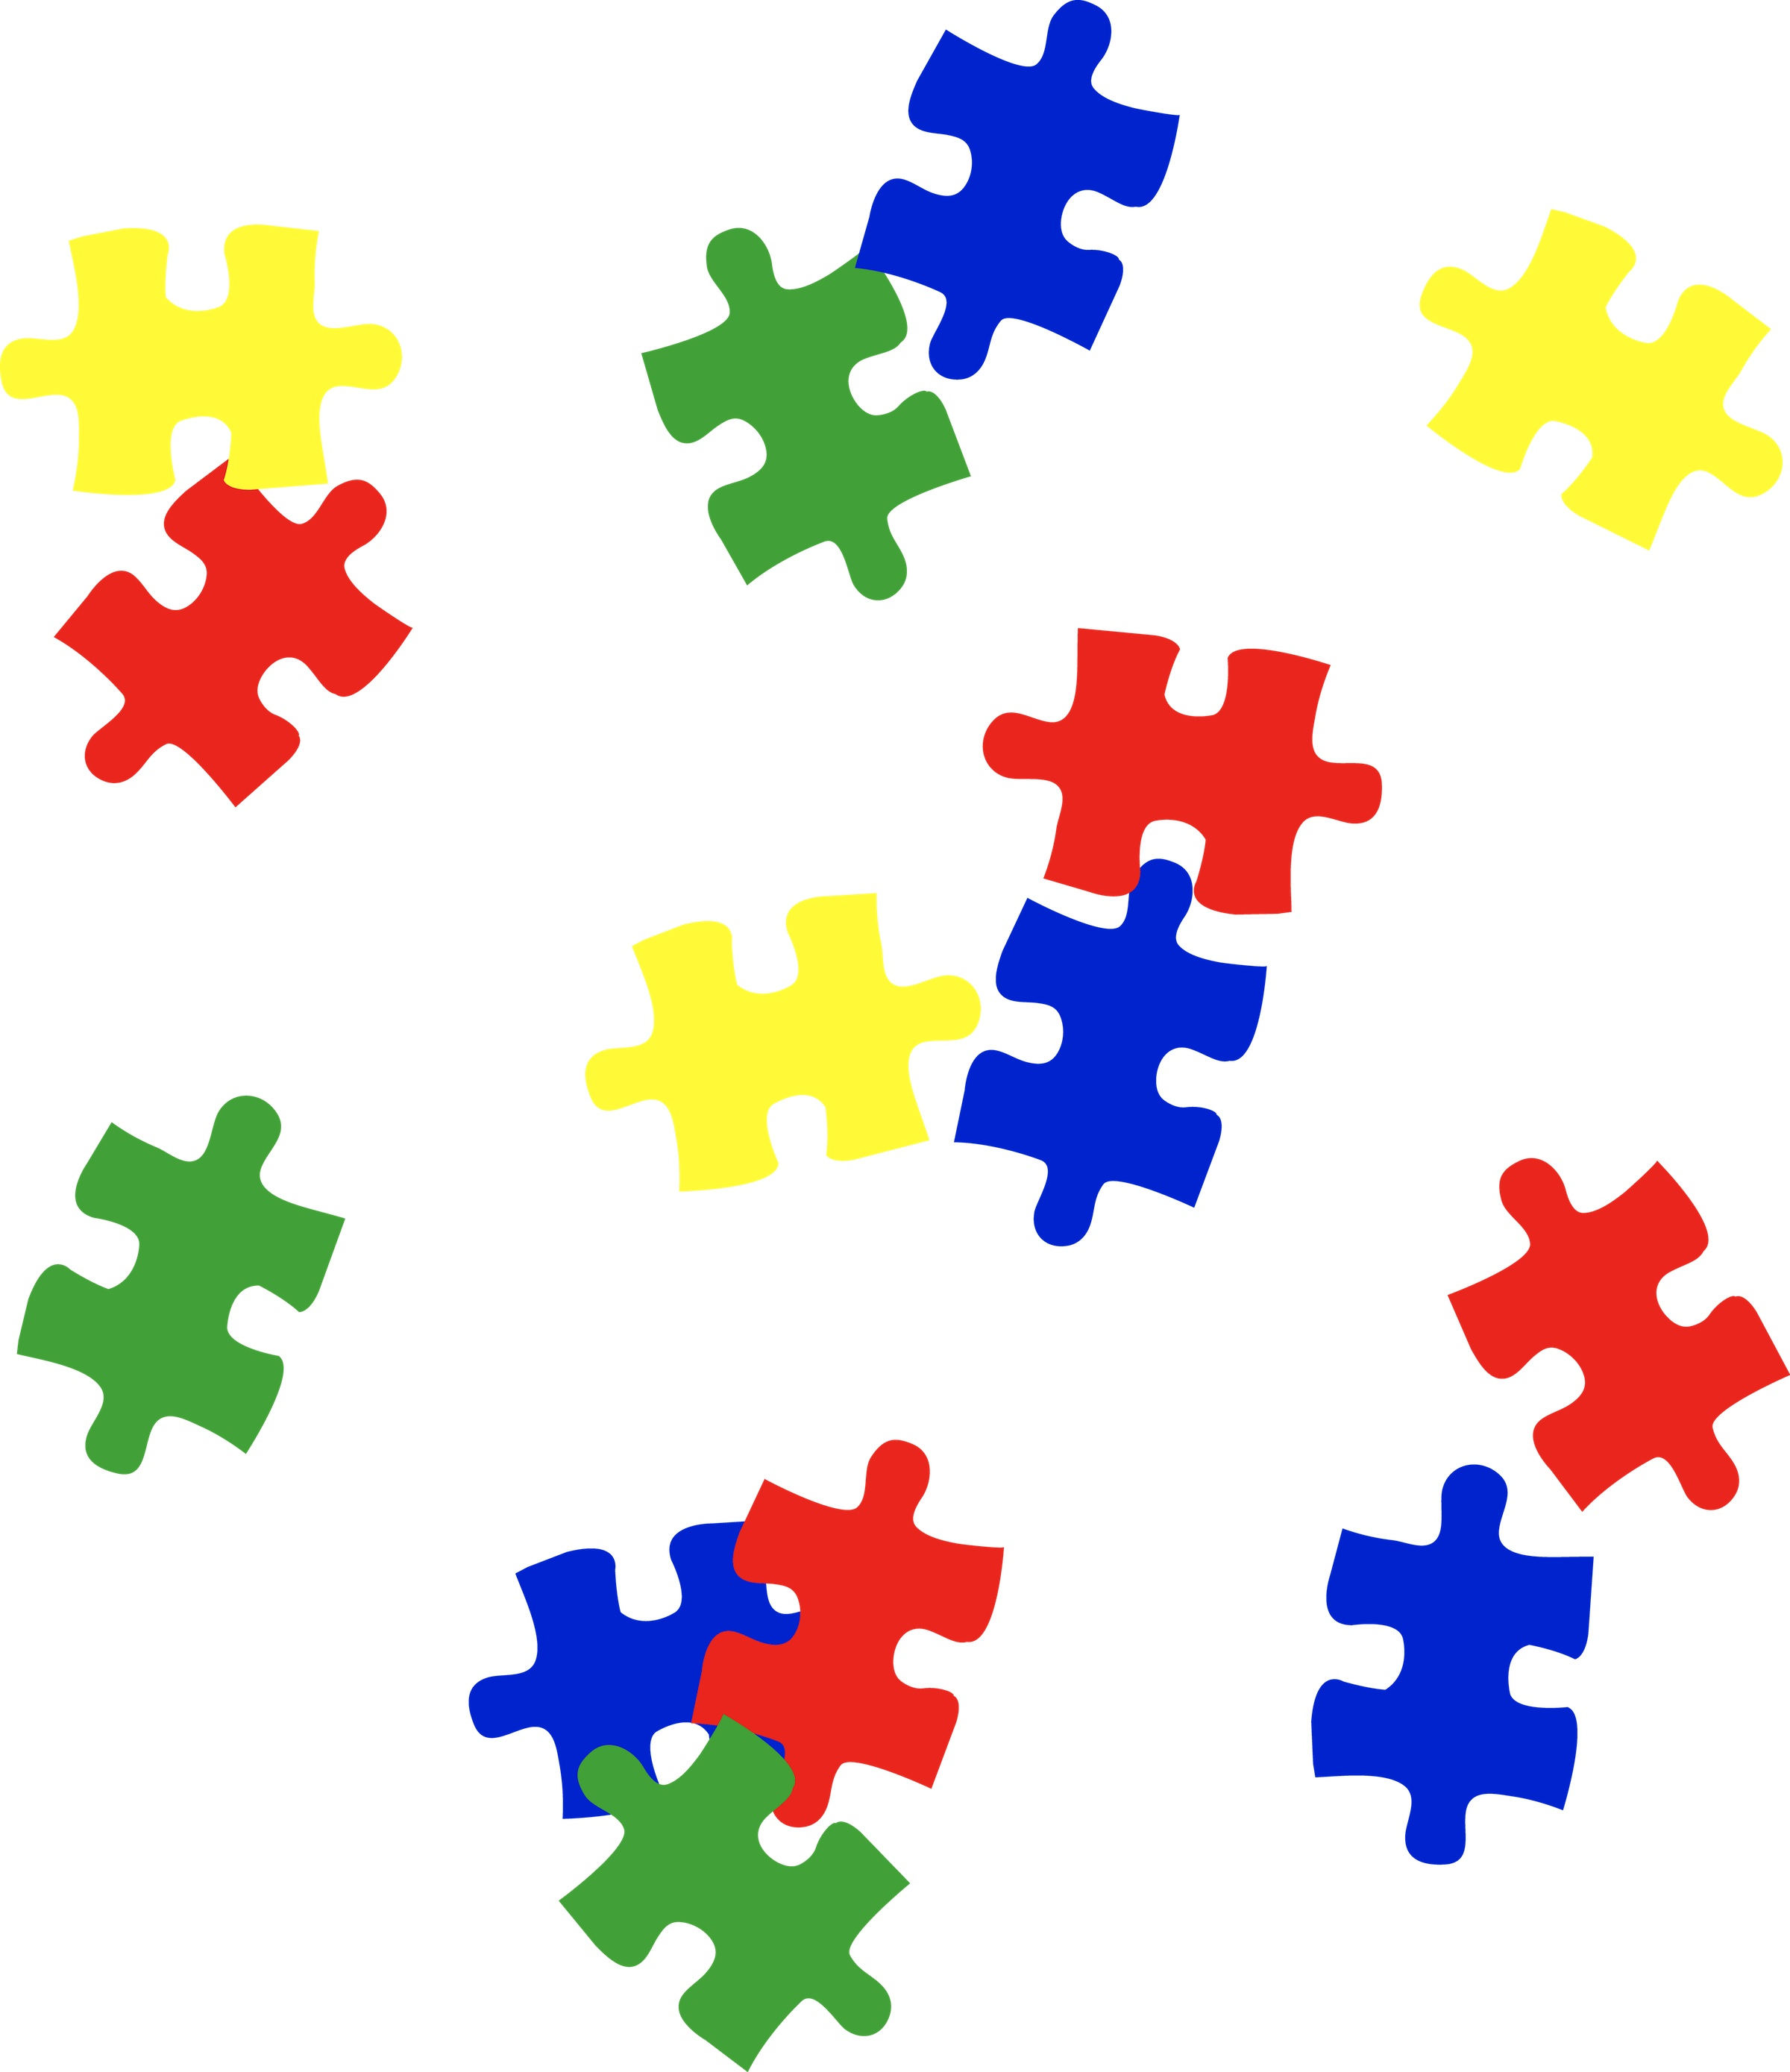 Autism awareness clipart image black and white Autism Awareness Clip Art – Clipart Free Download image black and white